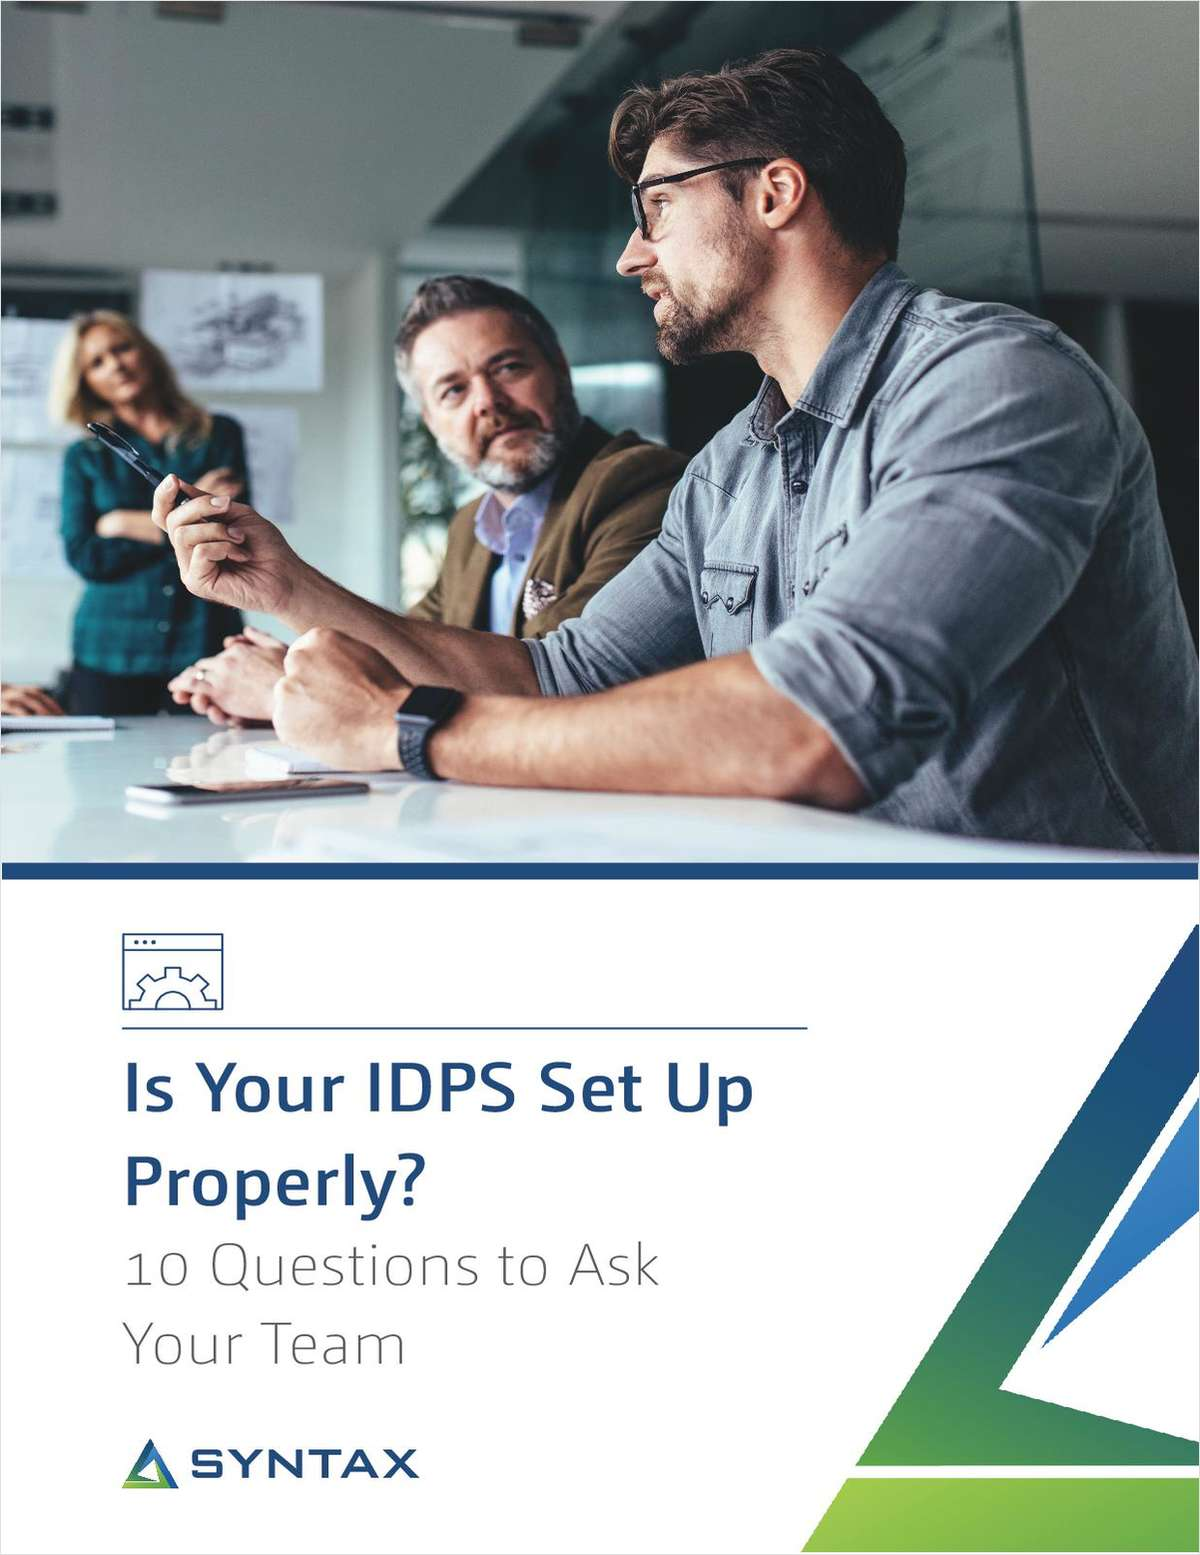 Is Your IDPS Set Up Properly? 10 Questions to Ask Your Team